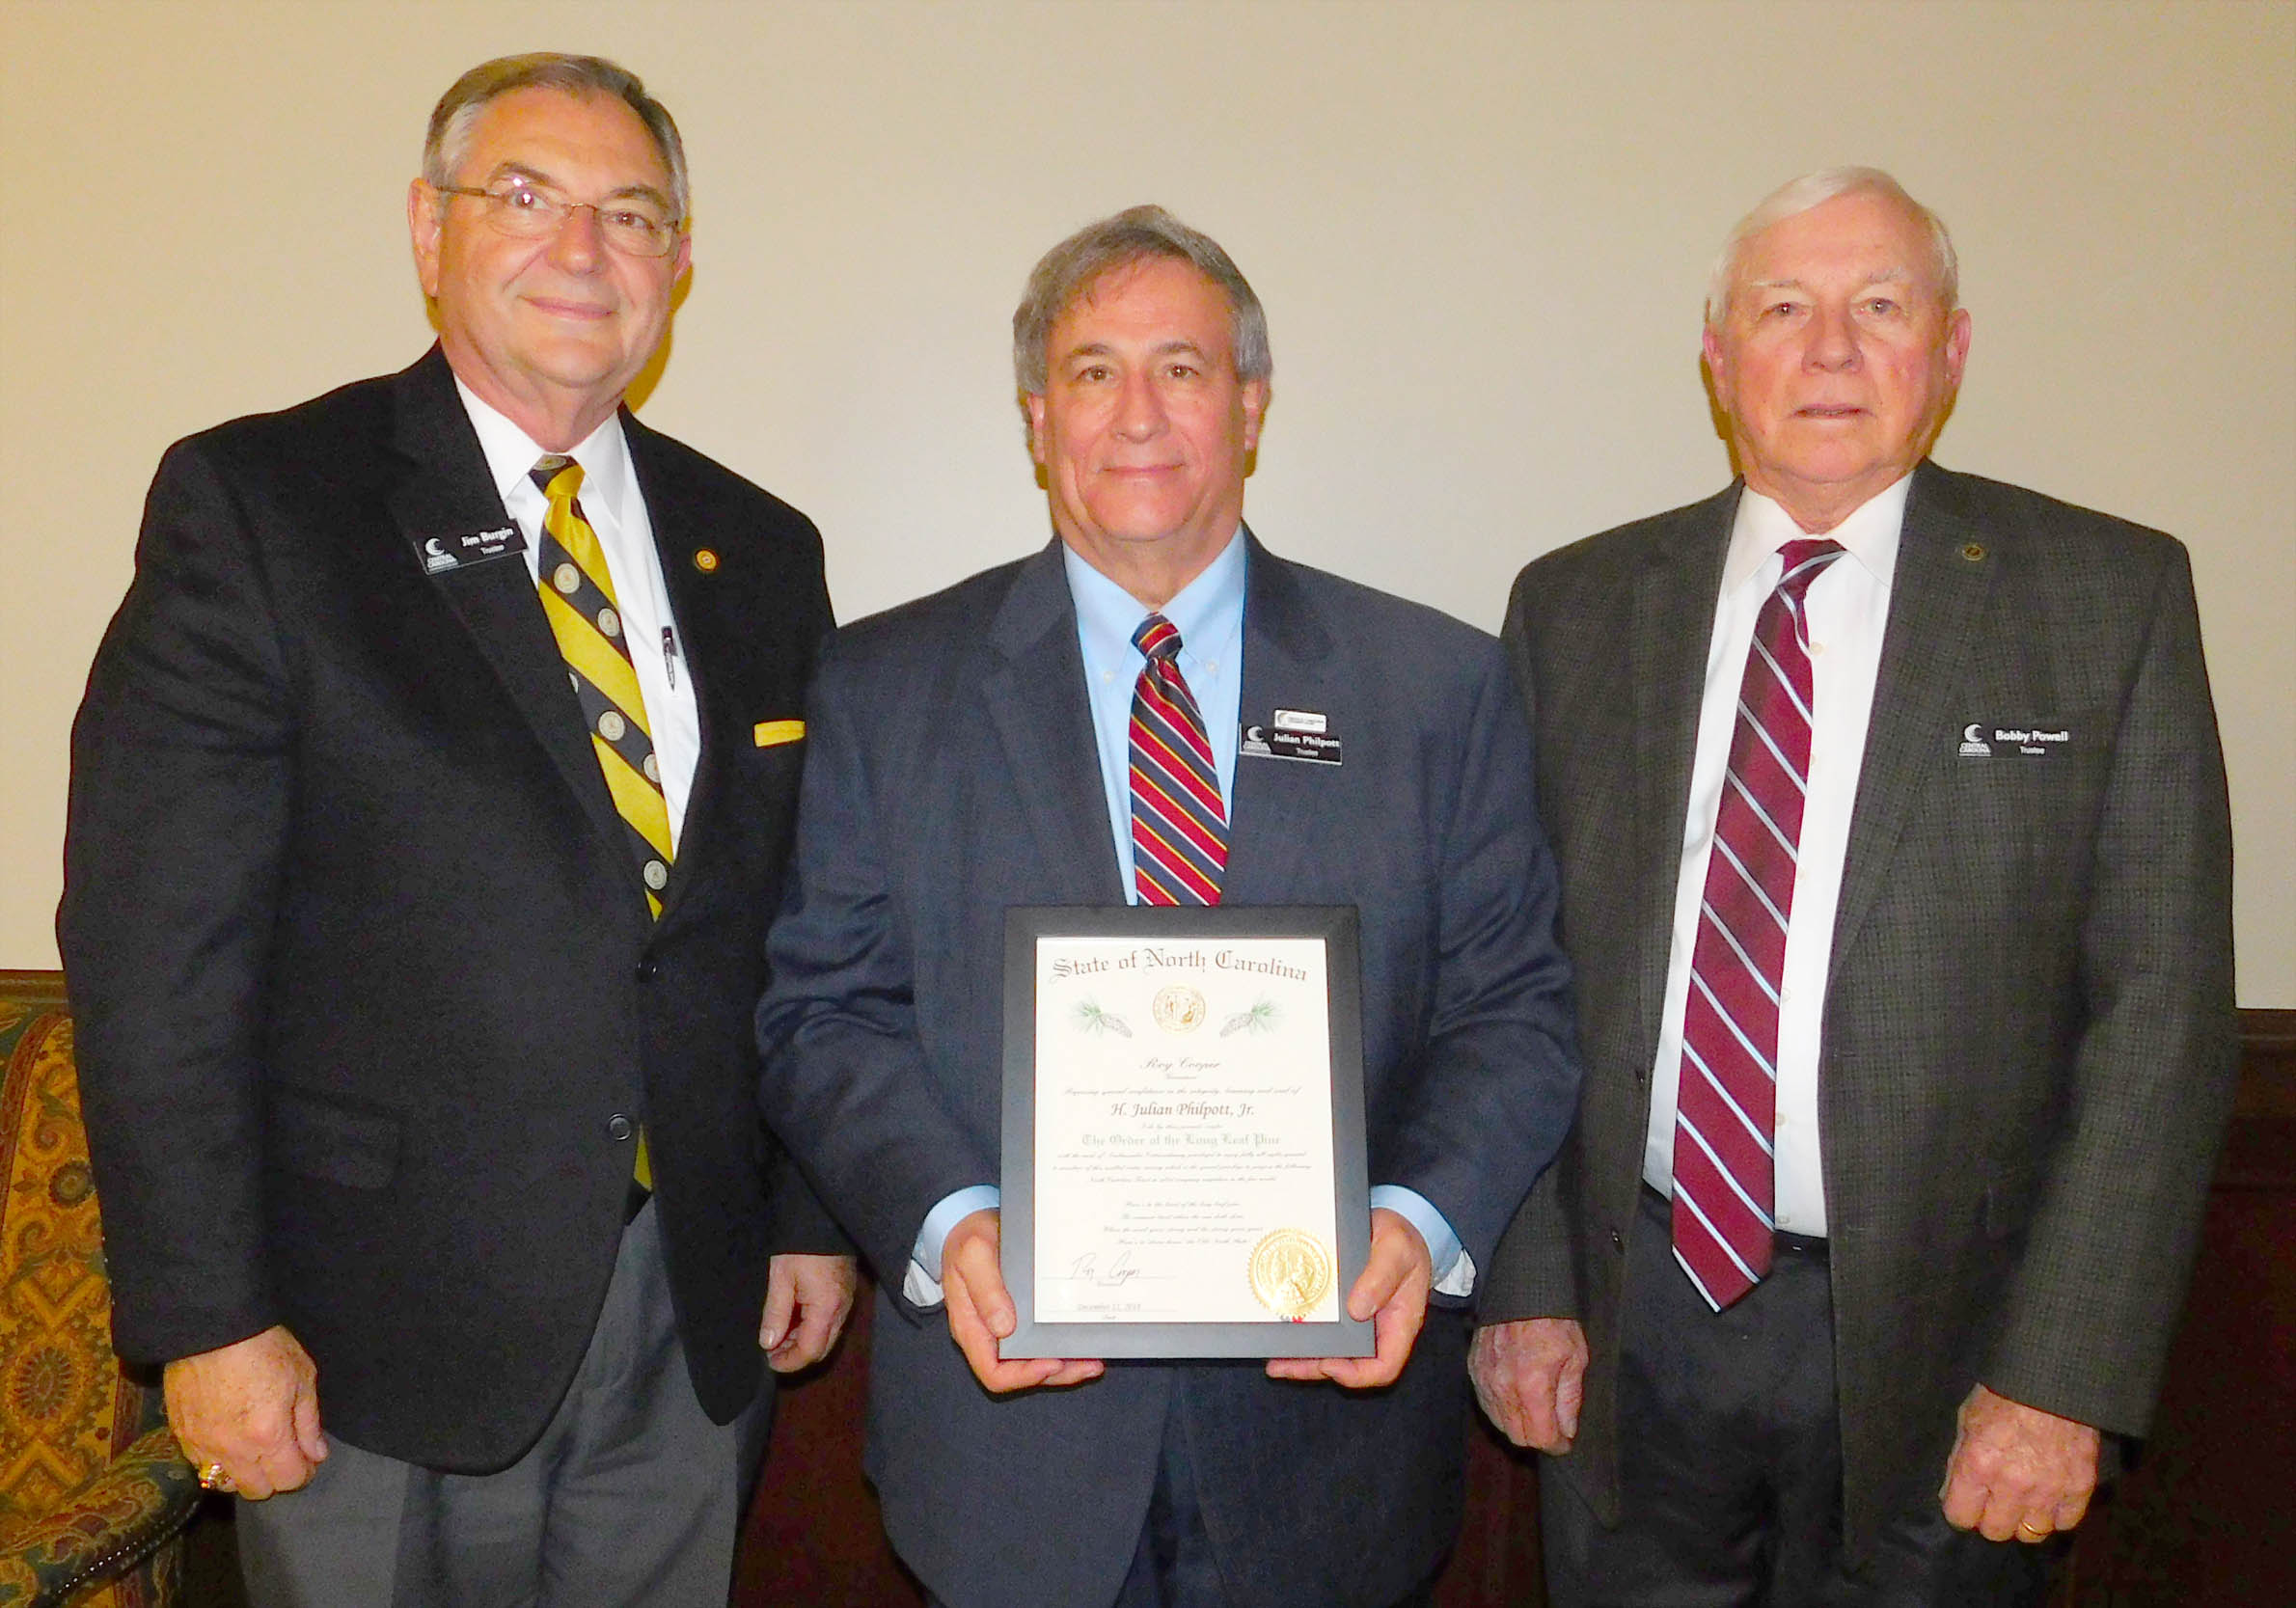 "Click to enlarge,  H. Julian Philpott Jr. (center), Chairman of the Central Carolina Community College Board of Trustees, recently received The Order of the Long Leaf Pine, a prestigious award given by the Governor of North Carolina. Philpott is a corporate attorney who has spent the last 30 years working as a lobbyist and general counsel for the nonprofit North Carolina Farm Bureau Federation and its affiliated companies. He is now a Senior Partner with Hayes Group Consulting. Pictured with Philpott are two other members of the CCCC Board of Trustees who also have received The Order of the Long Leaf Pine -- State Sen. Jim Burgin (left) and L.W. ""Bobby"" Powell (right)."